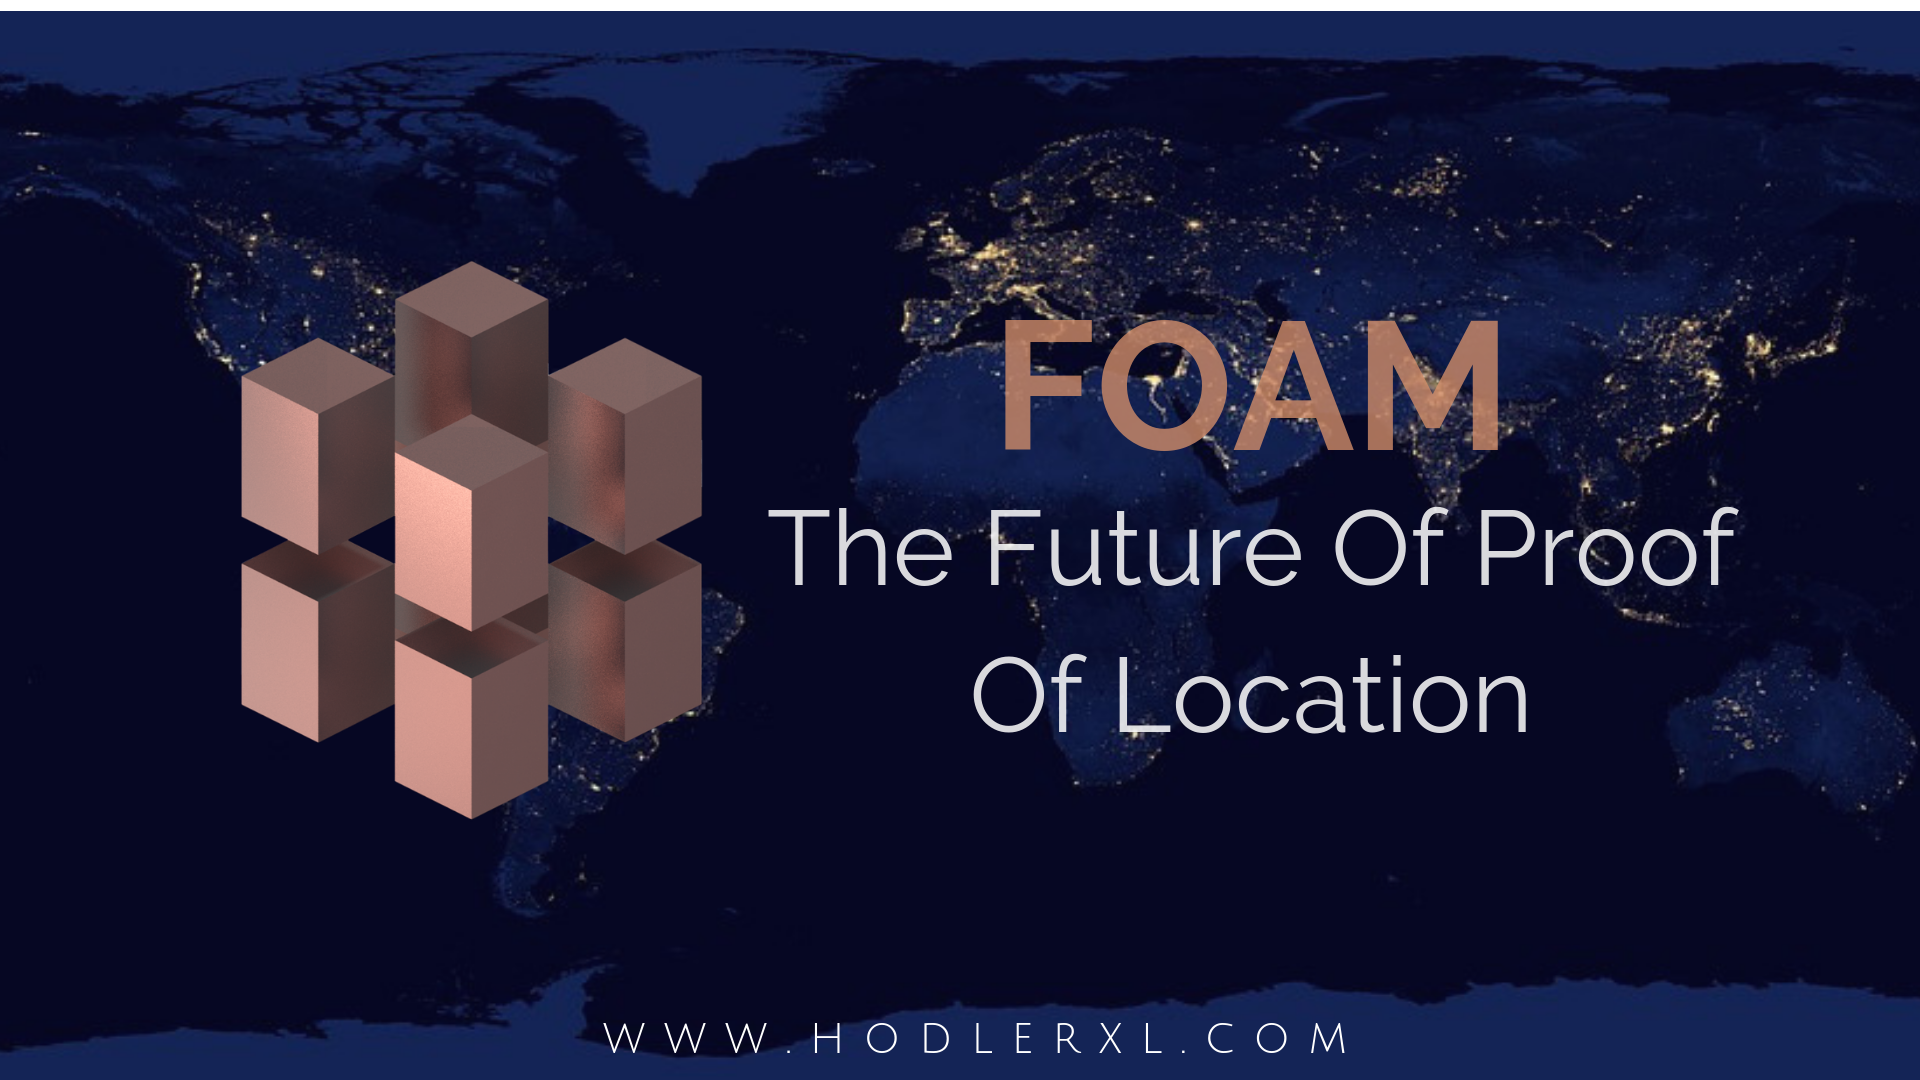 Foam, The Future Of Proof Of Location